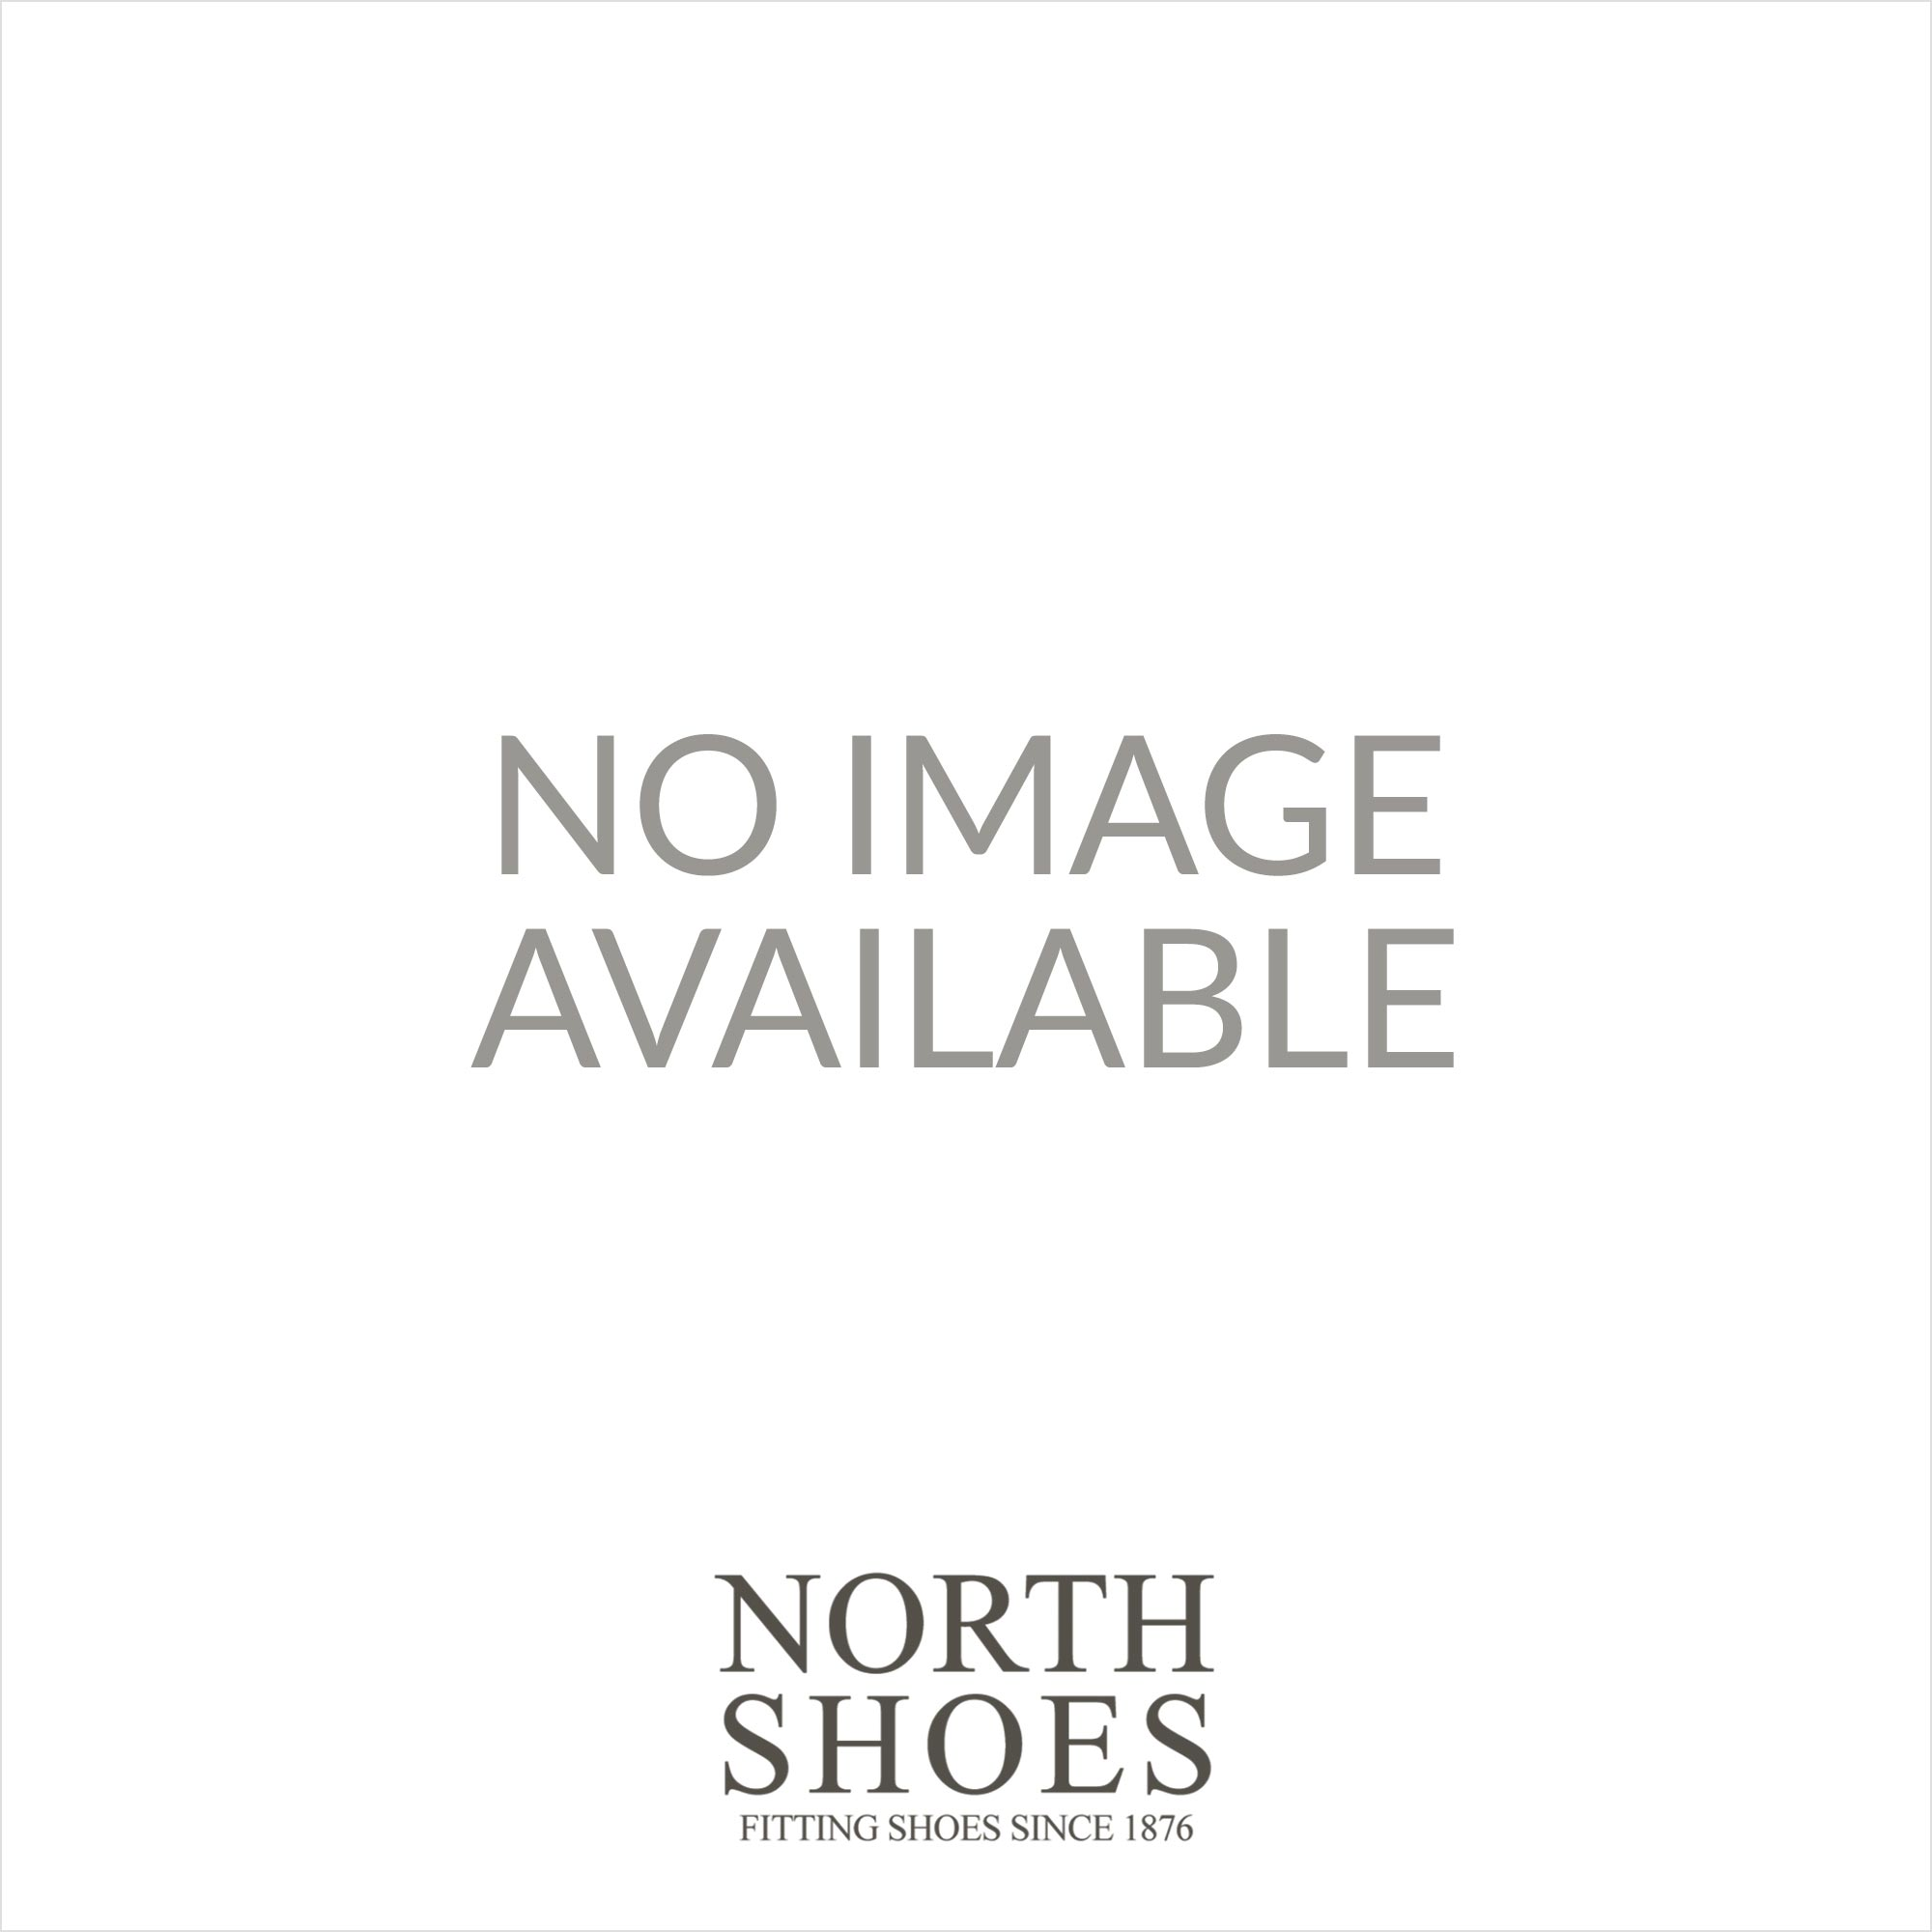 converse 756016c pink girls shoe converse from north